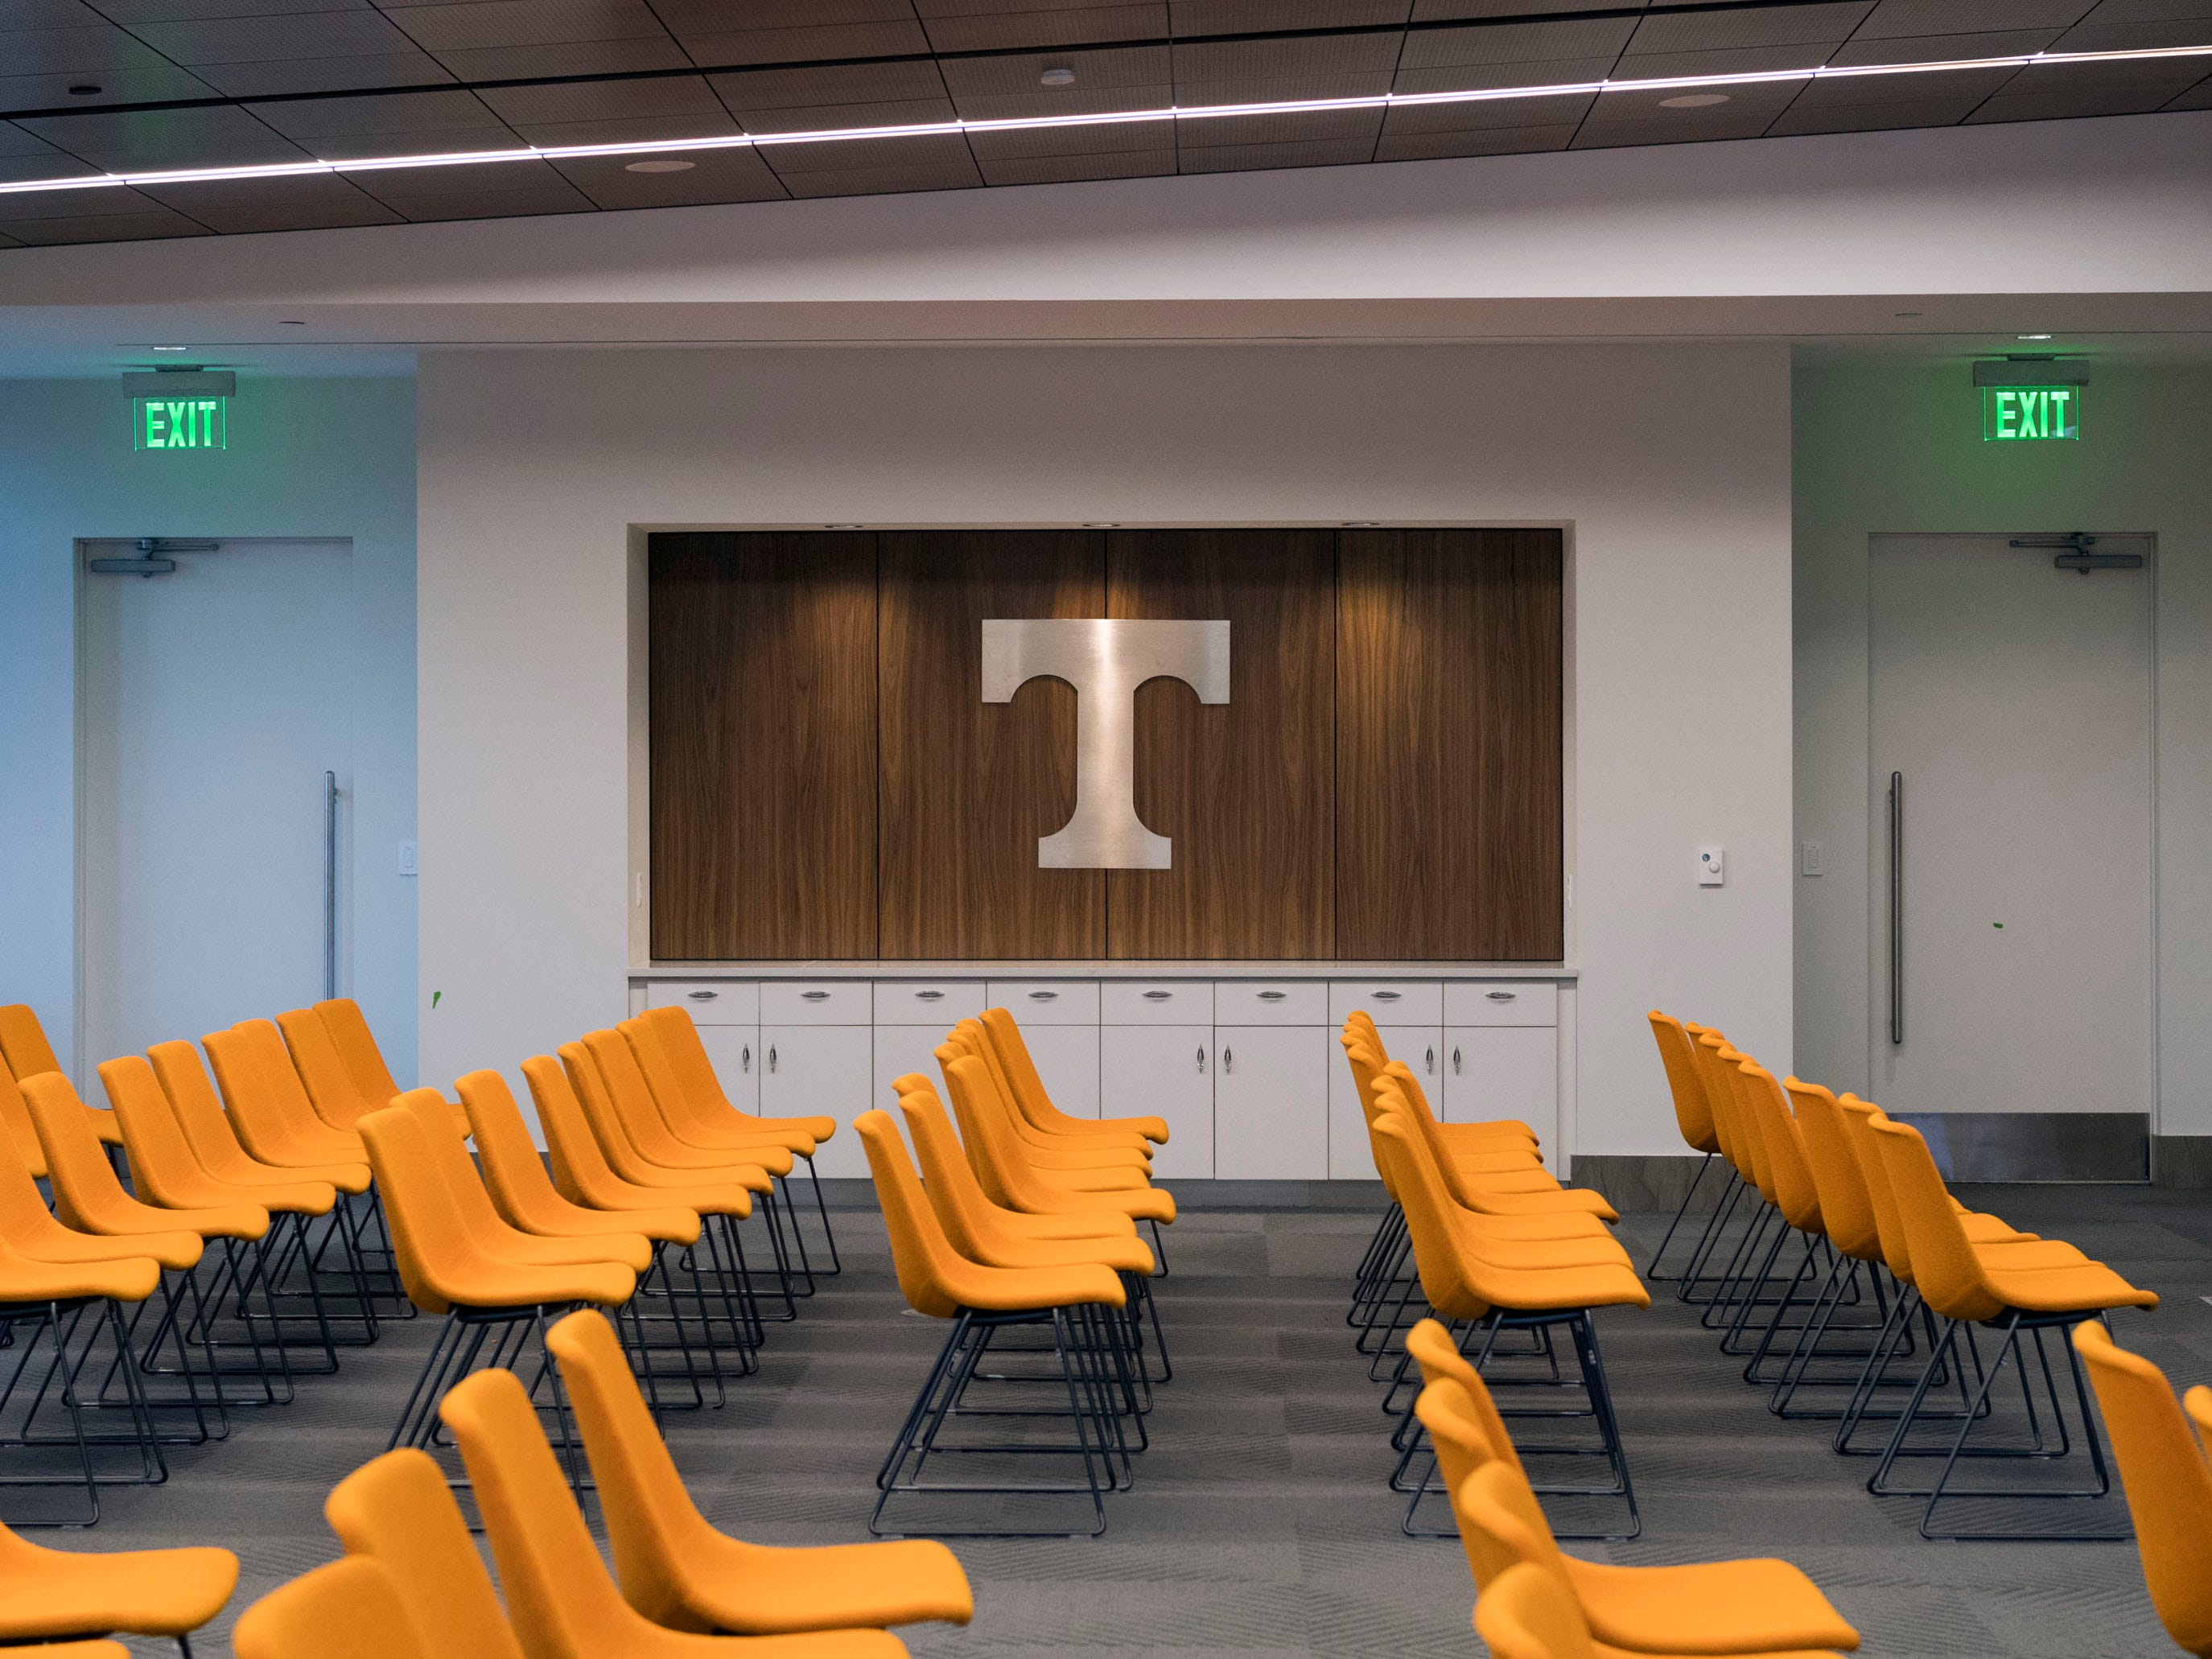 One of many meeting rooms of the newly opened Phase II of University of Tennessee's Student Union on Monday, January 7, 2019.